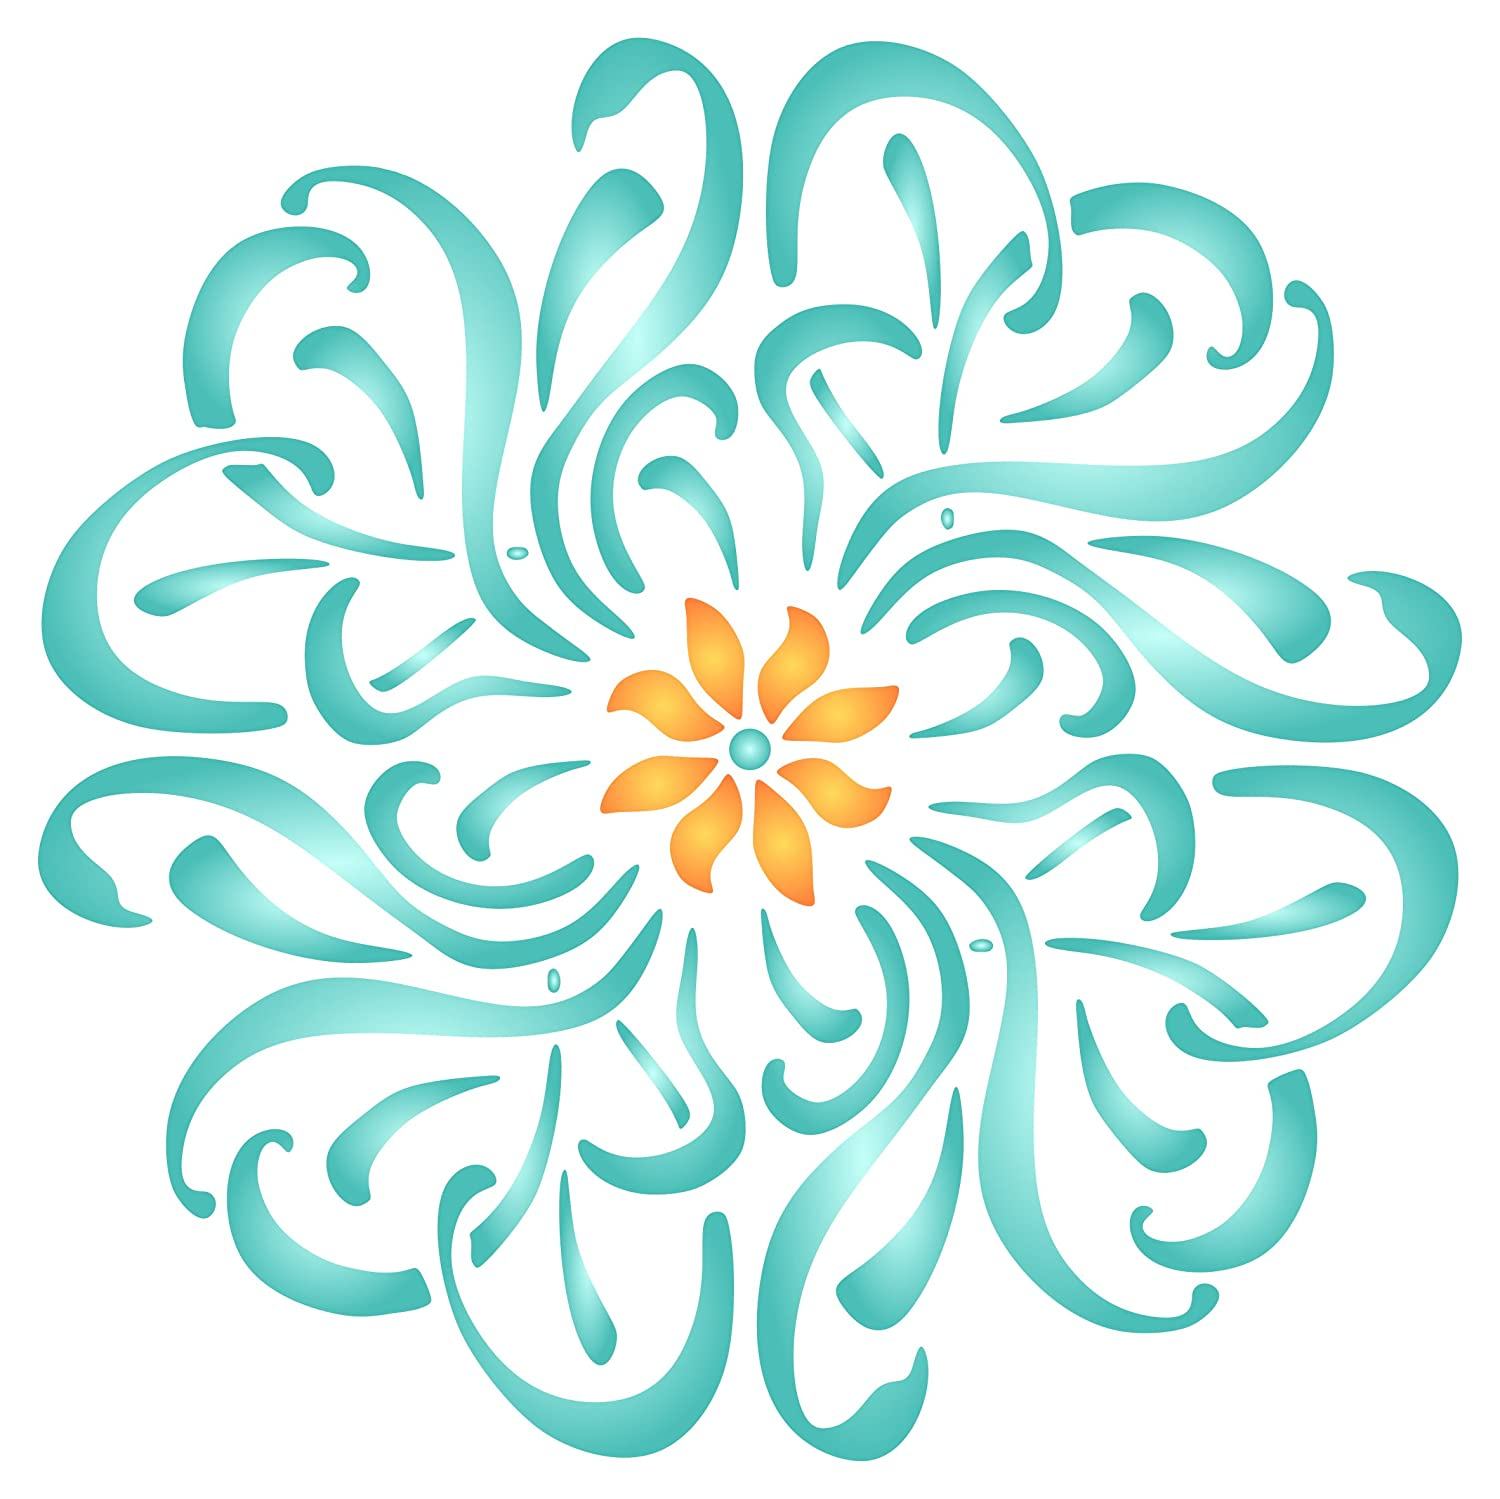 Flower Mandala Stencil - 14 x 14 inch (L) - Reusable Floral Flowers Flora  Plants Wall Stencil Template - Use on Paper Projects Scrapbook Journal  Walls